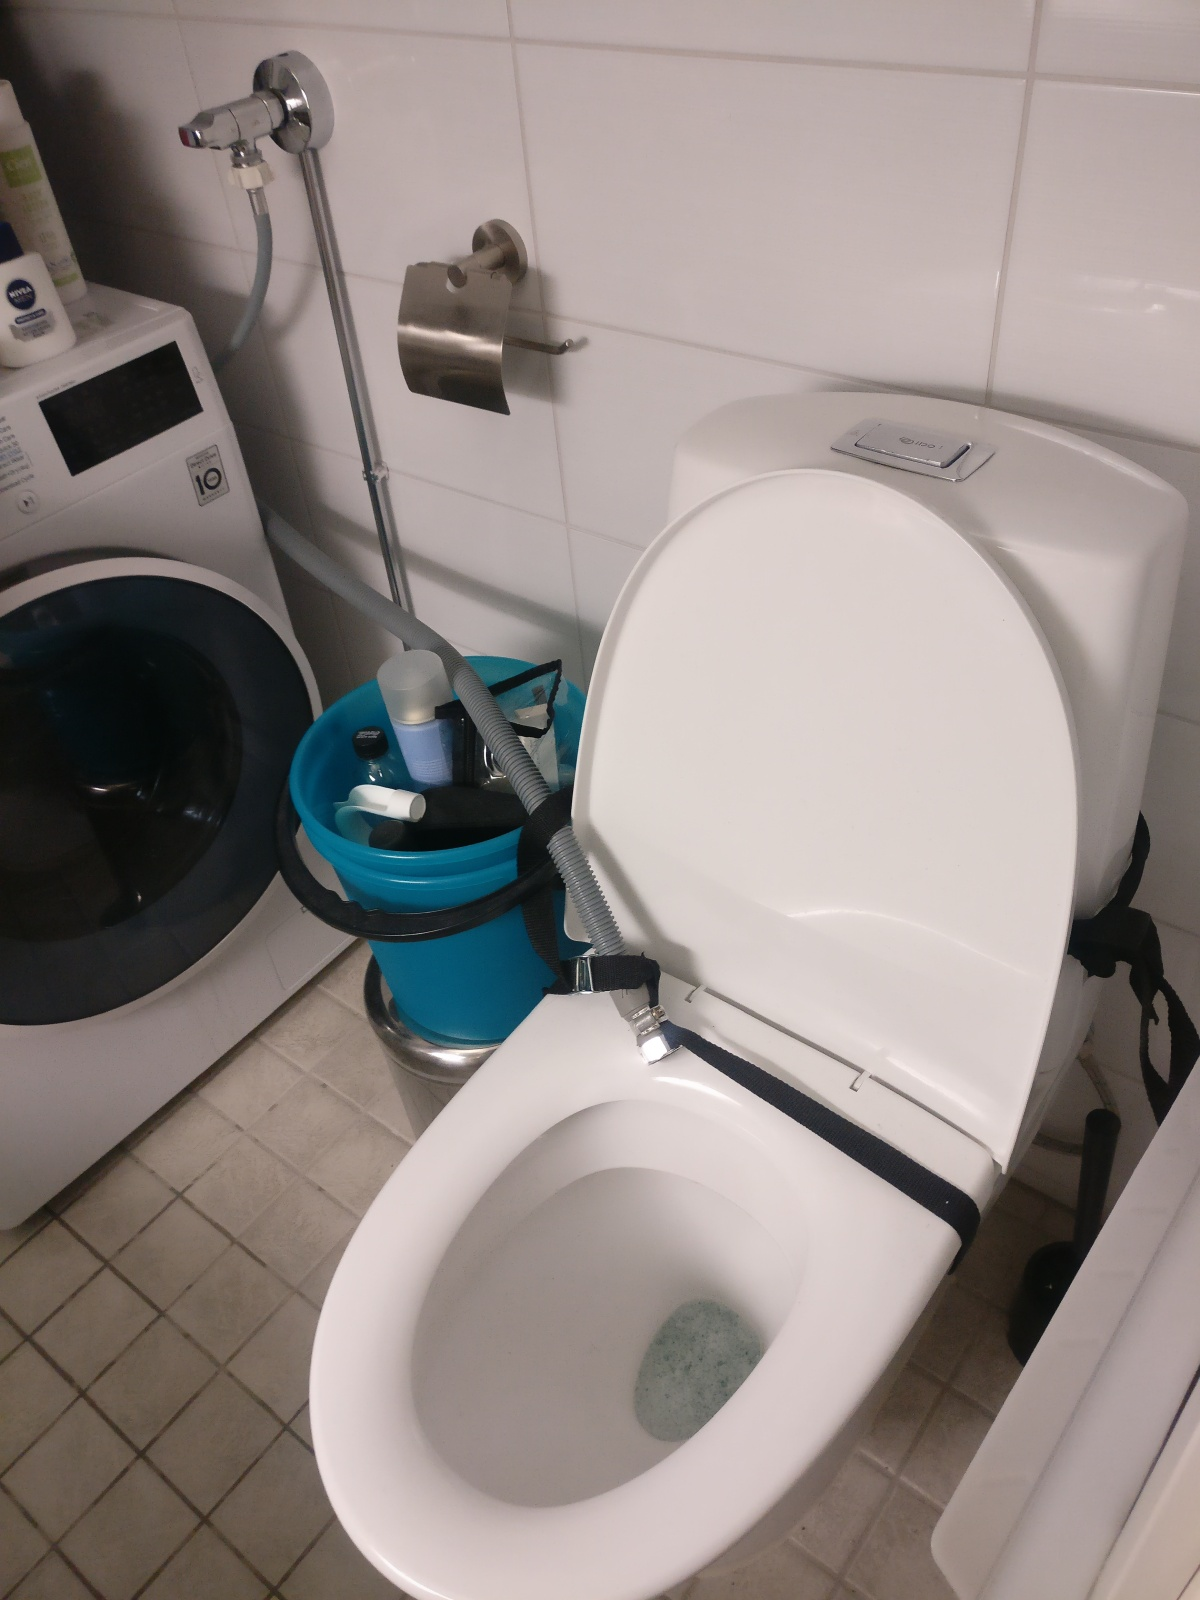 Connect Wc Toilet How To Connect Washing Machine Output Water To Wc Seat